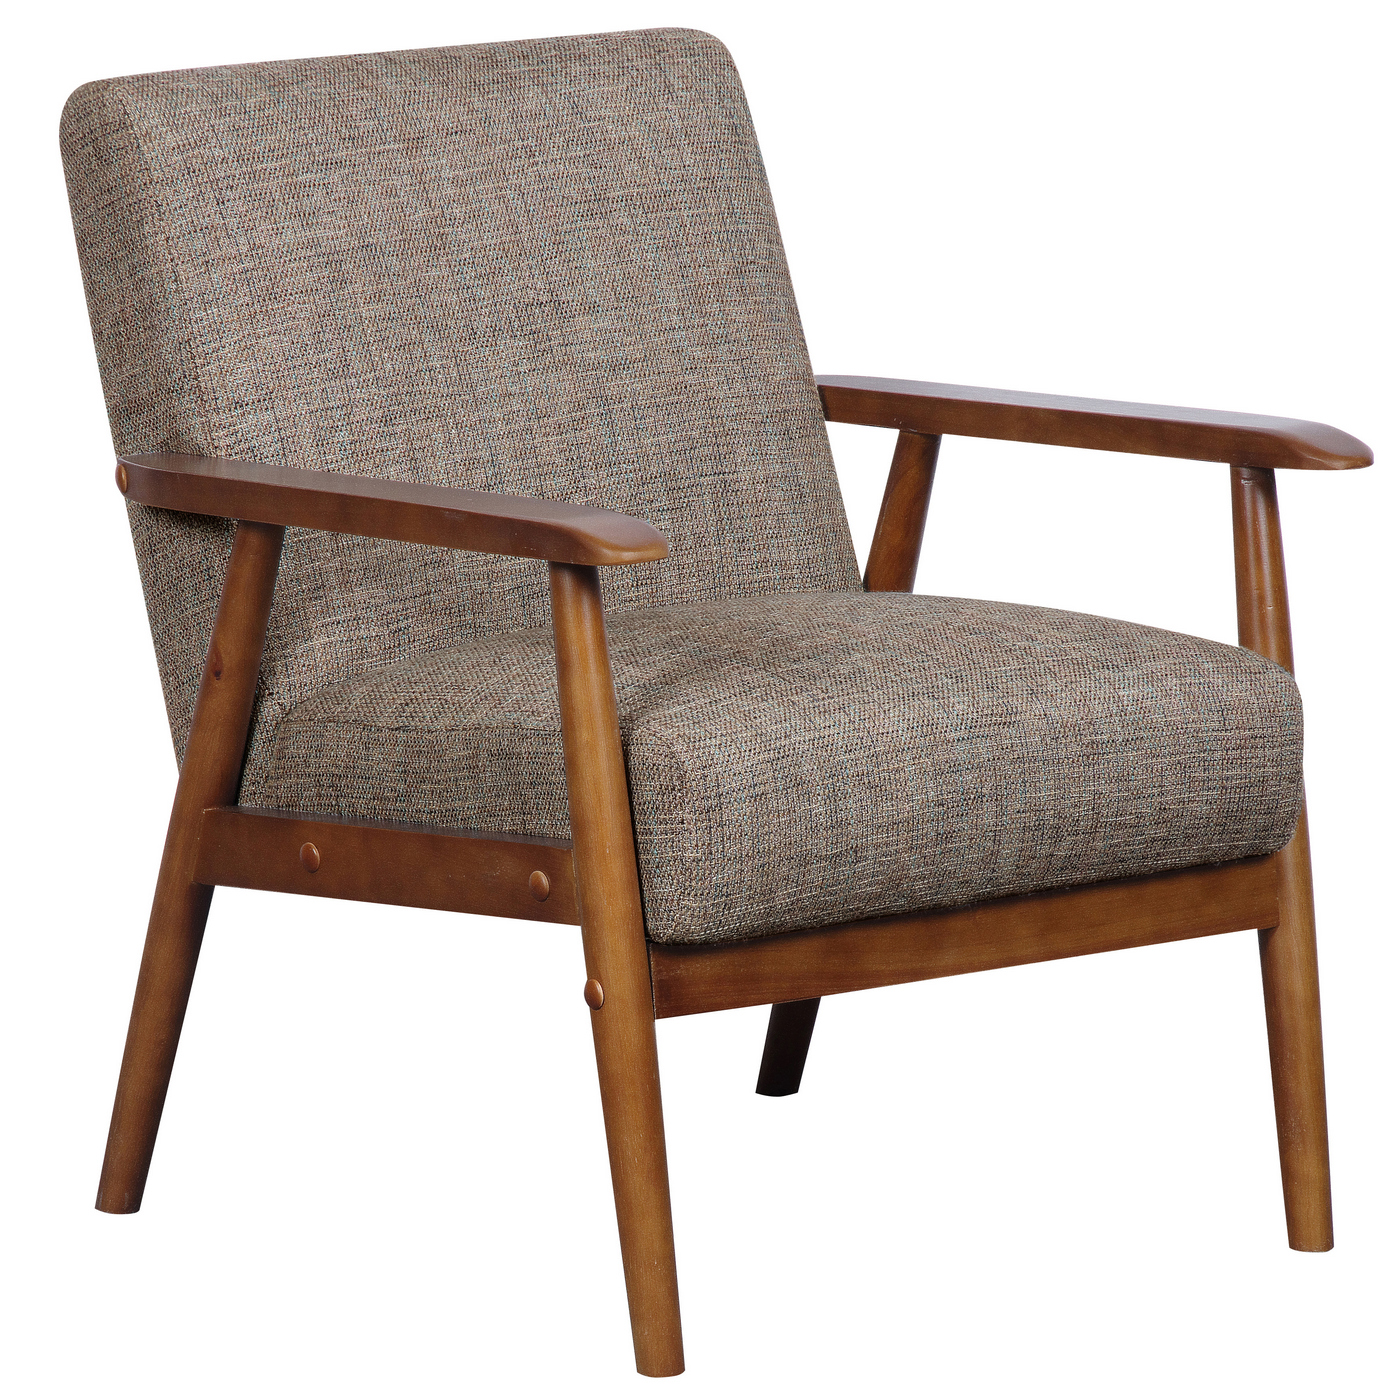 Branchdale Wood Frame Accent Chair: Lillington Calypso Brown Linen Accent Chair With Exposed